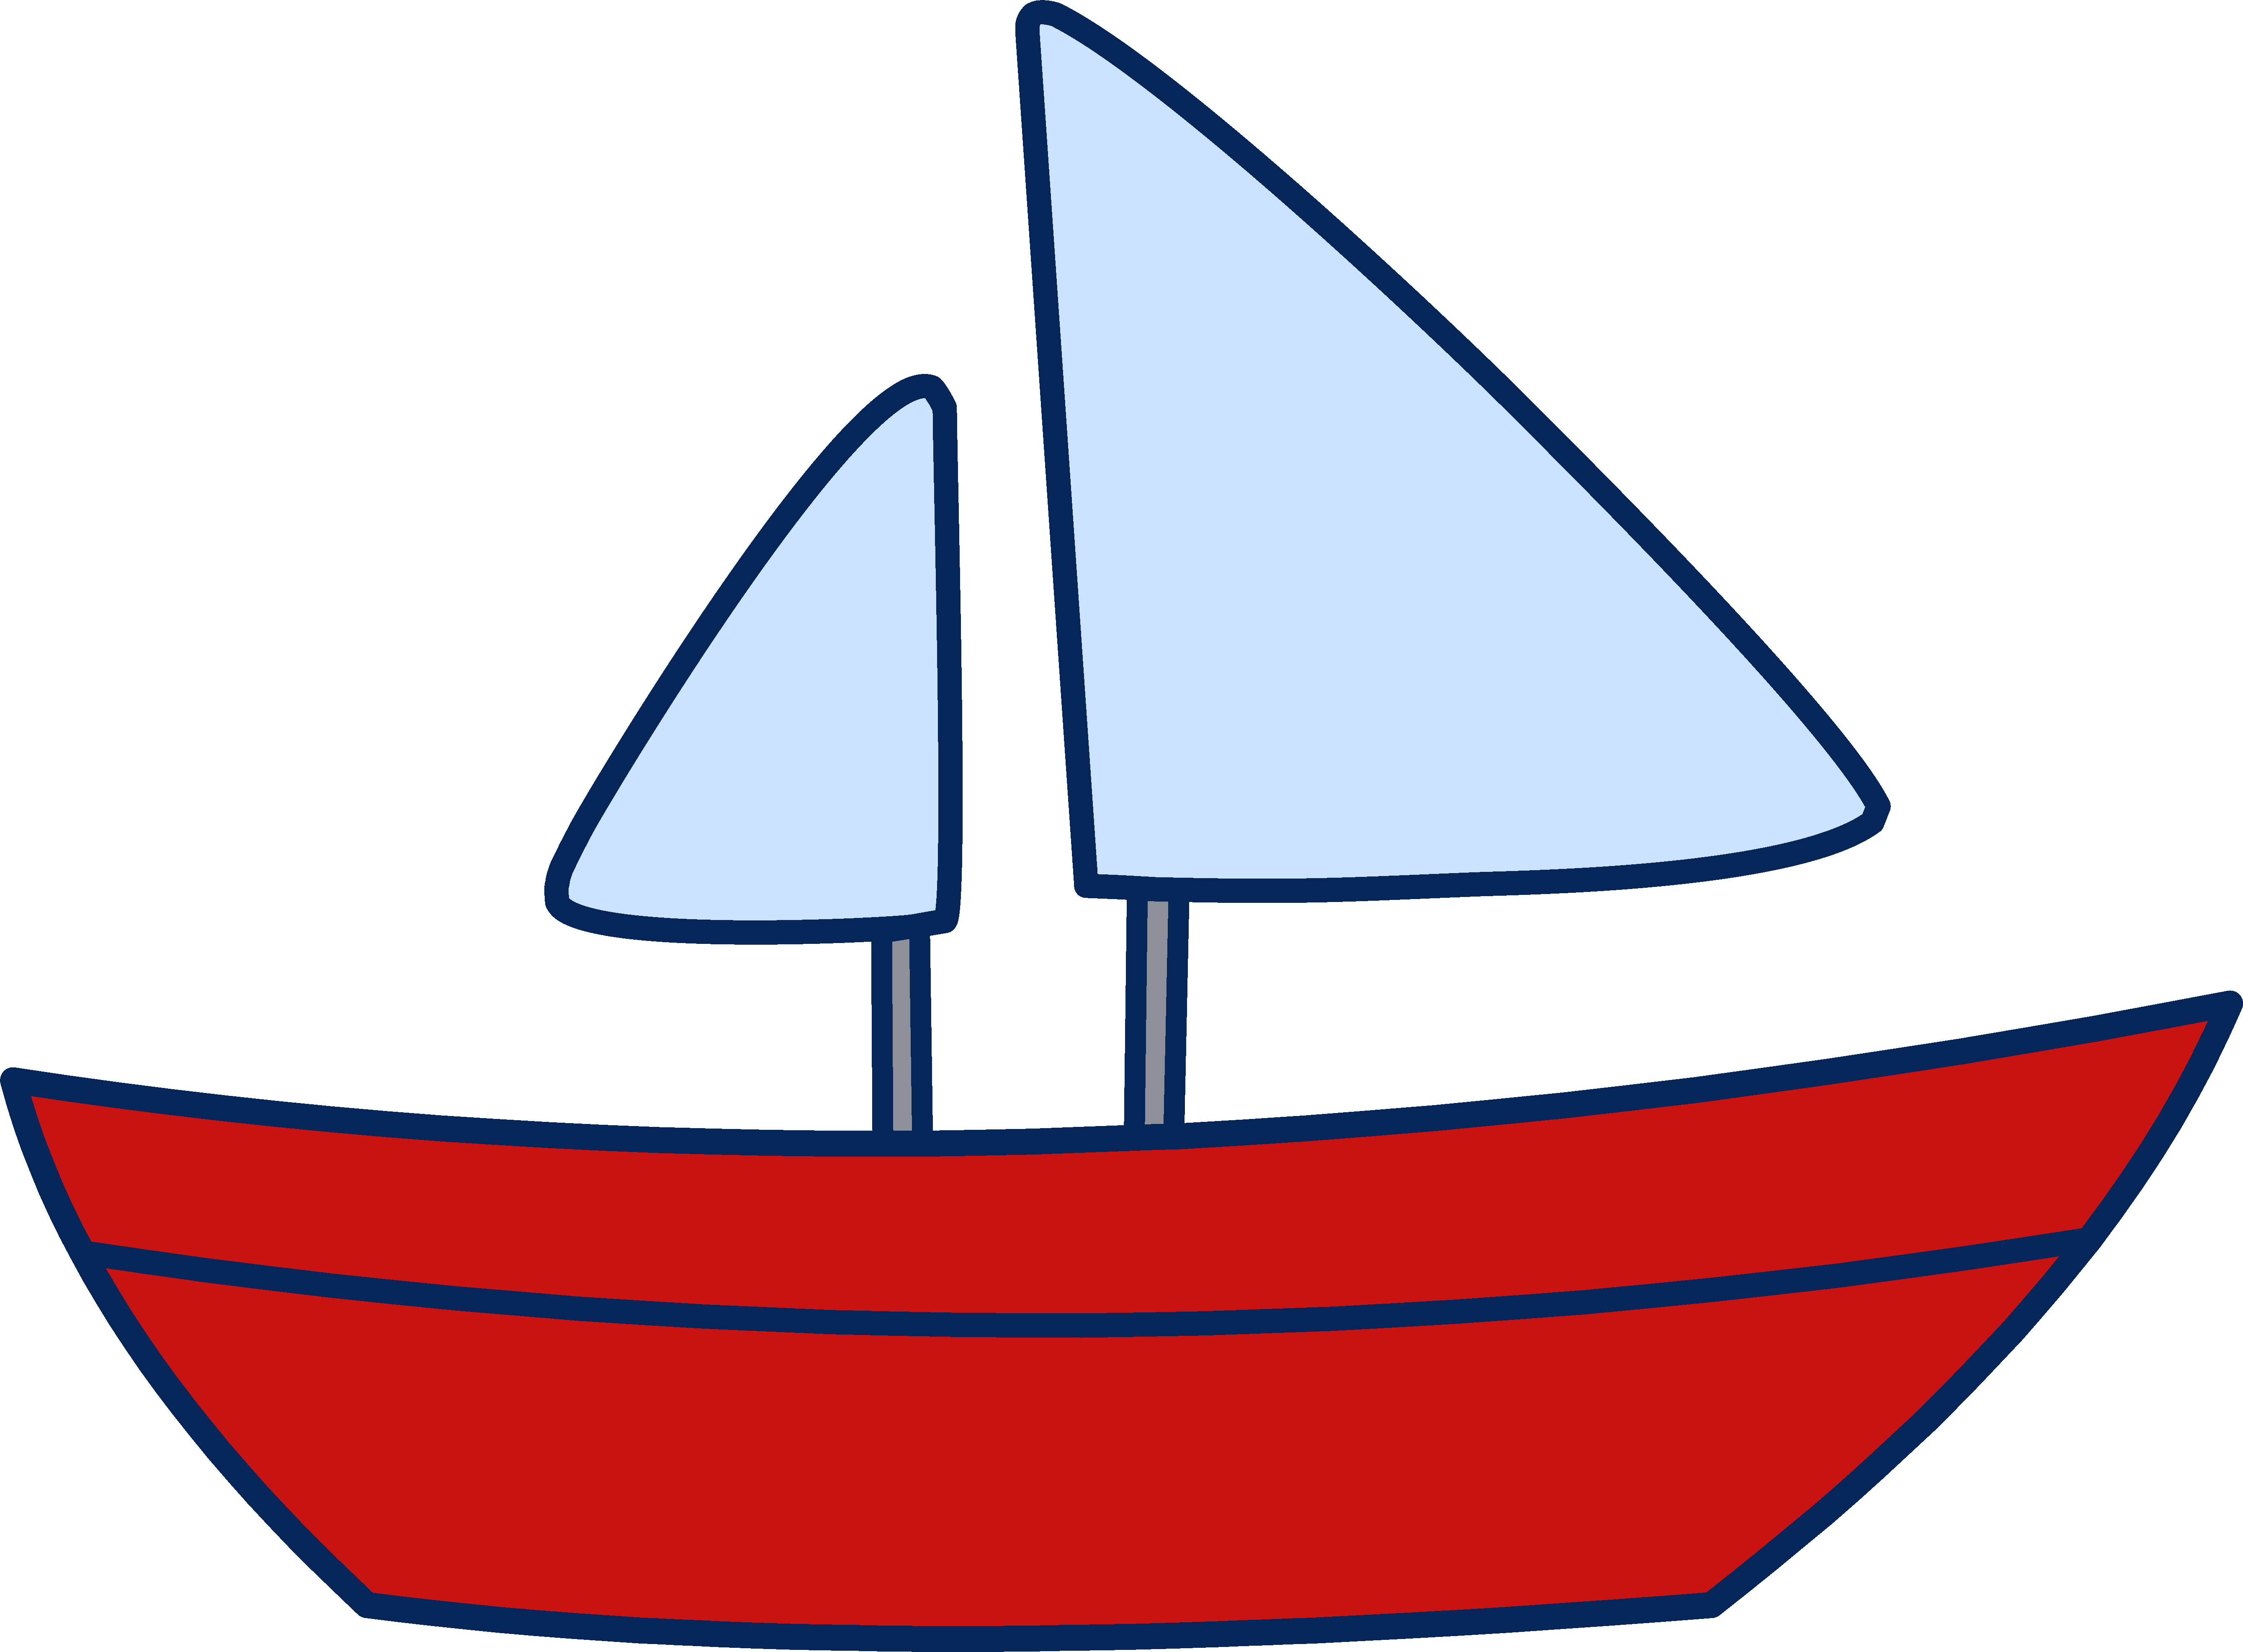 Paper clipart sailboat. Drawing yahoo image search